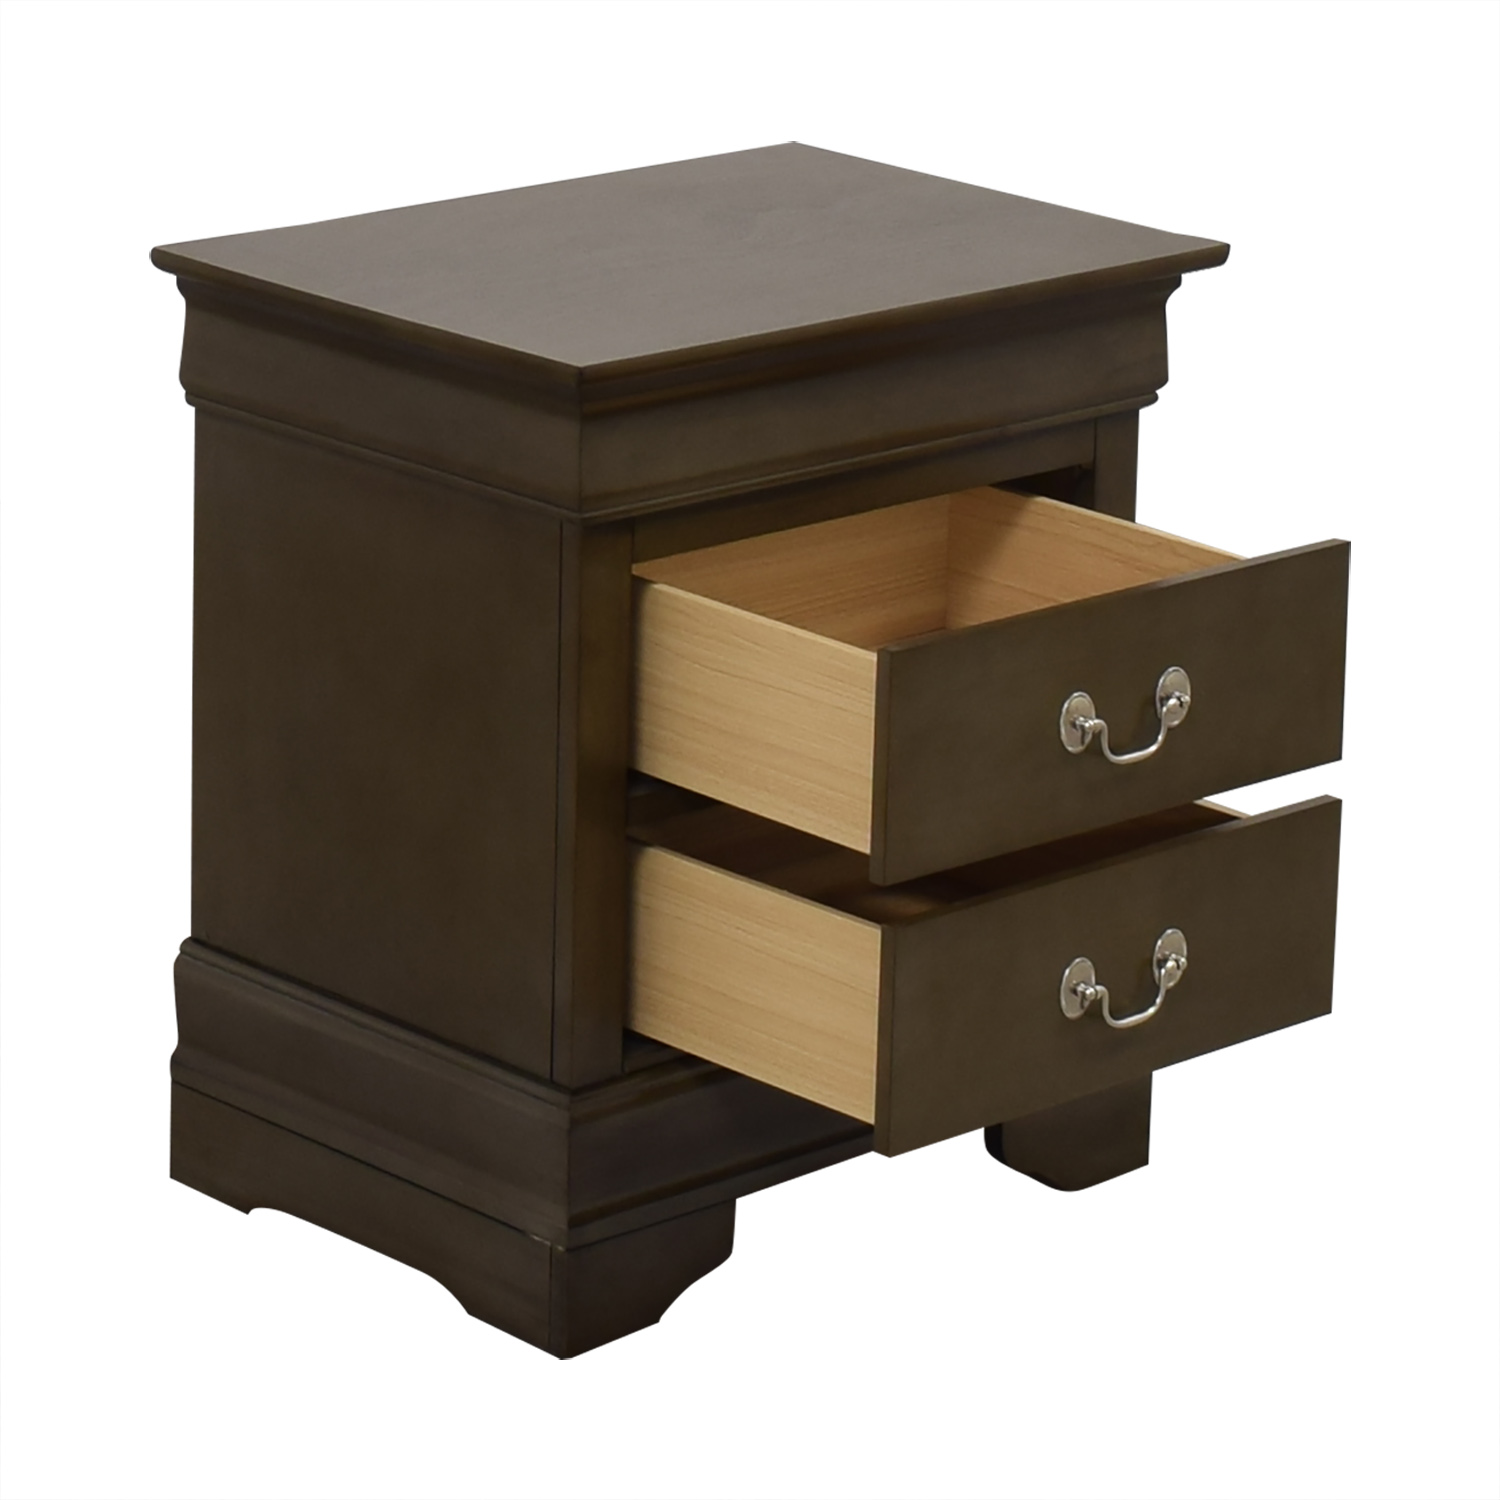 Raymour & Flanigan Two Drawer Nightstand sale